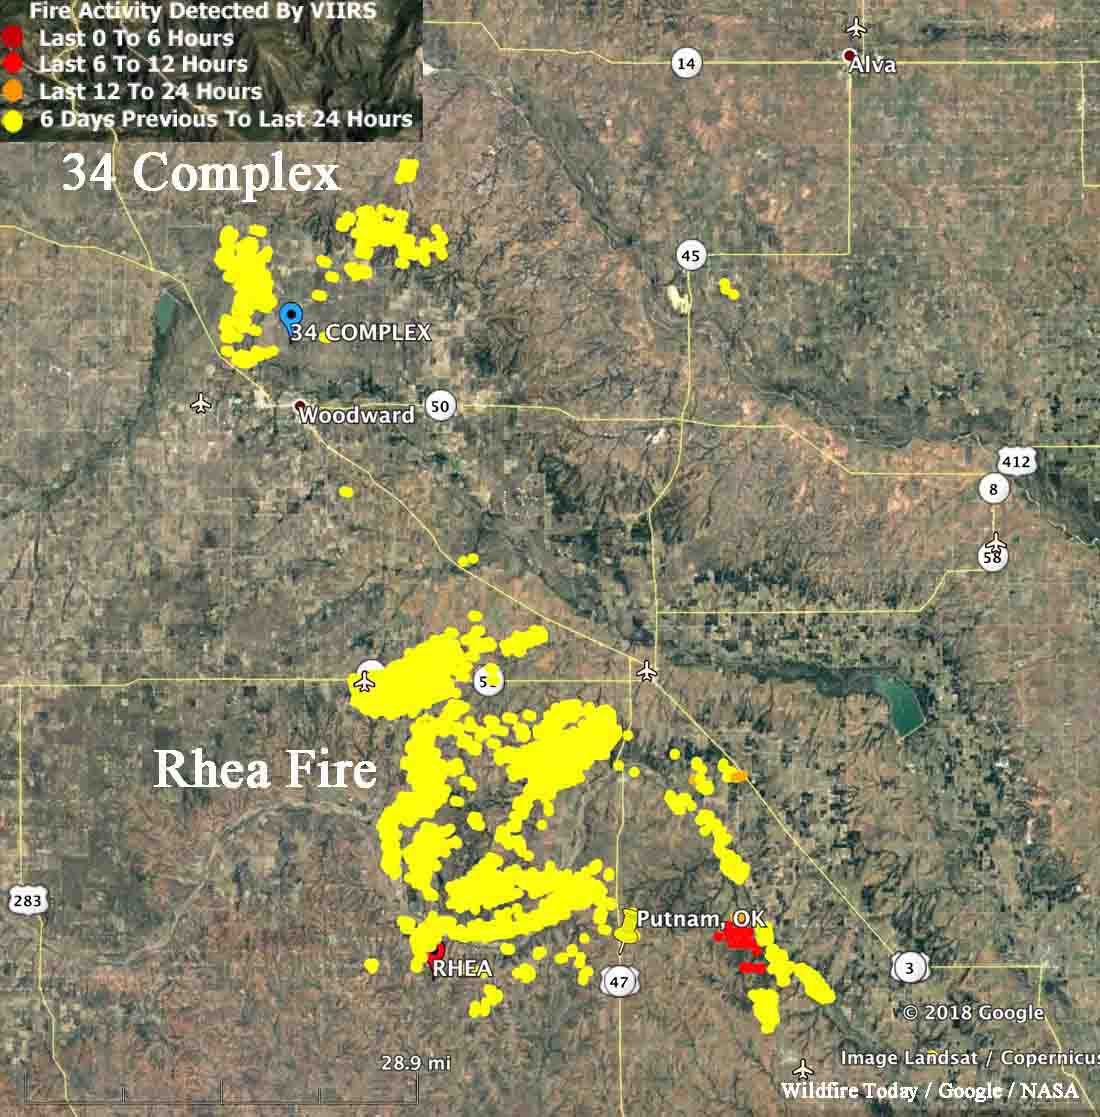 Oklahoma wildfires: 34 Complex slows, Rhea continues to spread ...